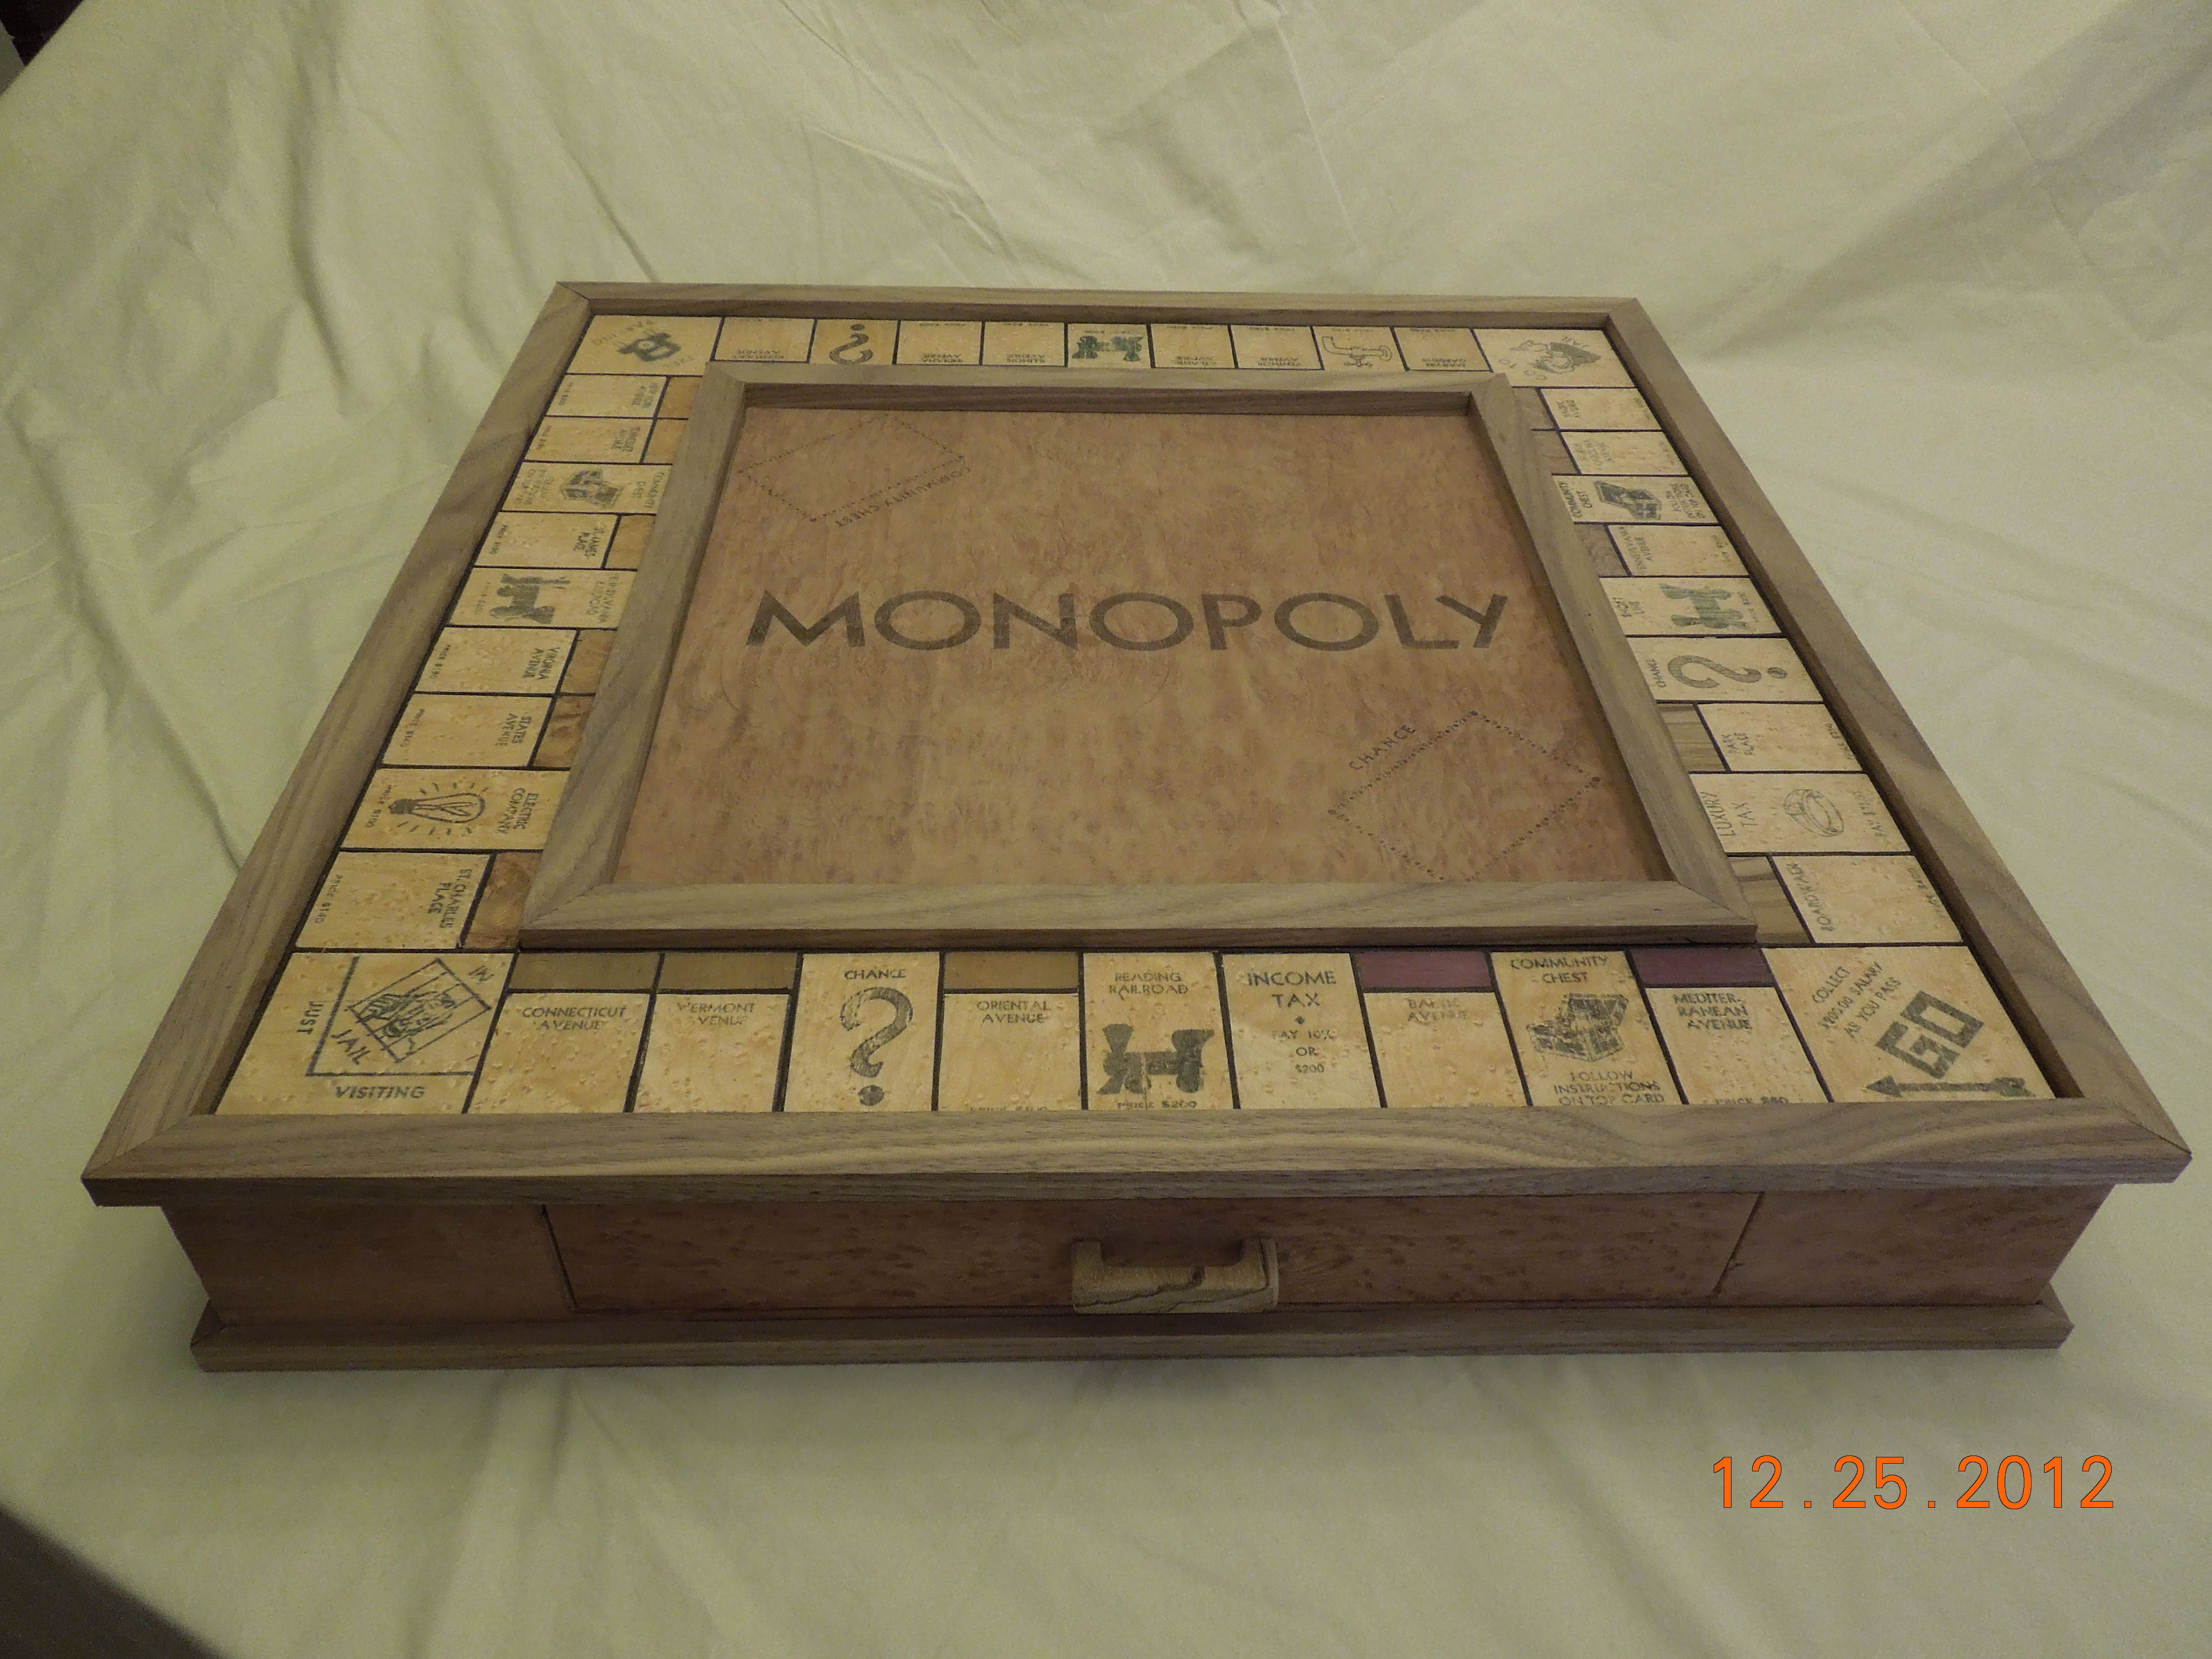 inlay monopoly board Google Search Projects Pinterest